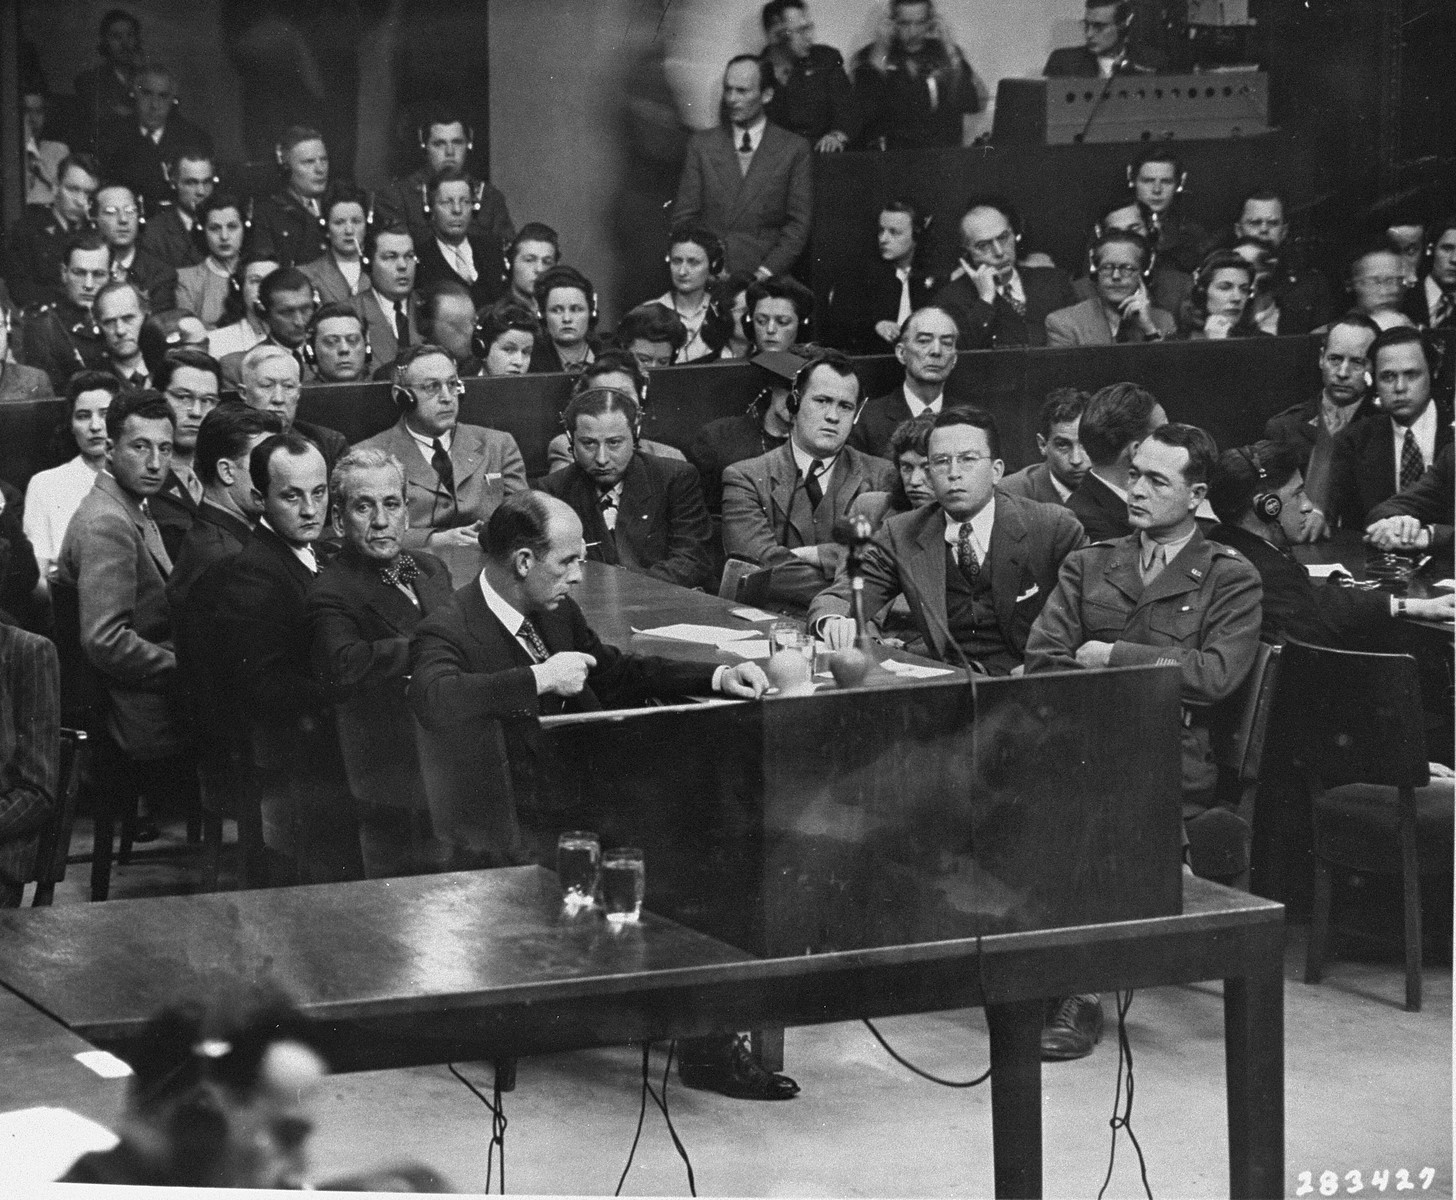 The prosecution team on the day the court announced its findings at the Milch Trial.  Seated at the right is Brigadier General Telford Taylor, Chief of Counsel.  Across from him is Clark Denny, Chief Trial Counsel.  Seated directly in front of the partition, wearing a gray suit, dark tie, and headphones, is Harold Sebring, who presided over the Medical Crial.  On his right is Johnson T. Crawford, another judge for the Medical Crial.  Also seated directly in front of the partition, to the right of the woman wearing a hat, is Walter B. Beals (one of the judges for the Medical Case.""